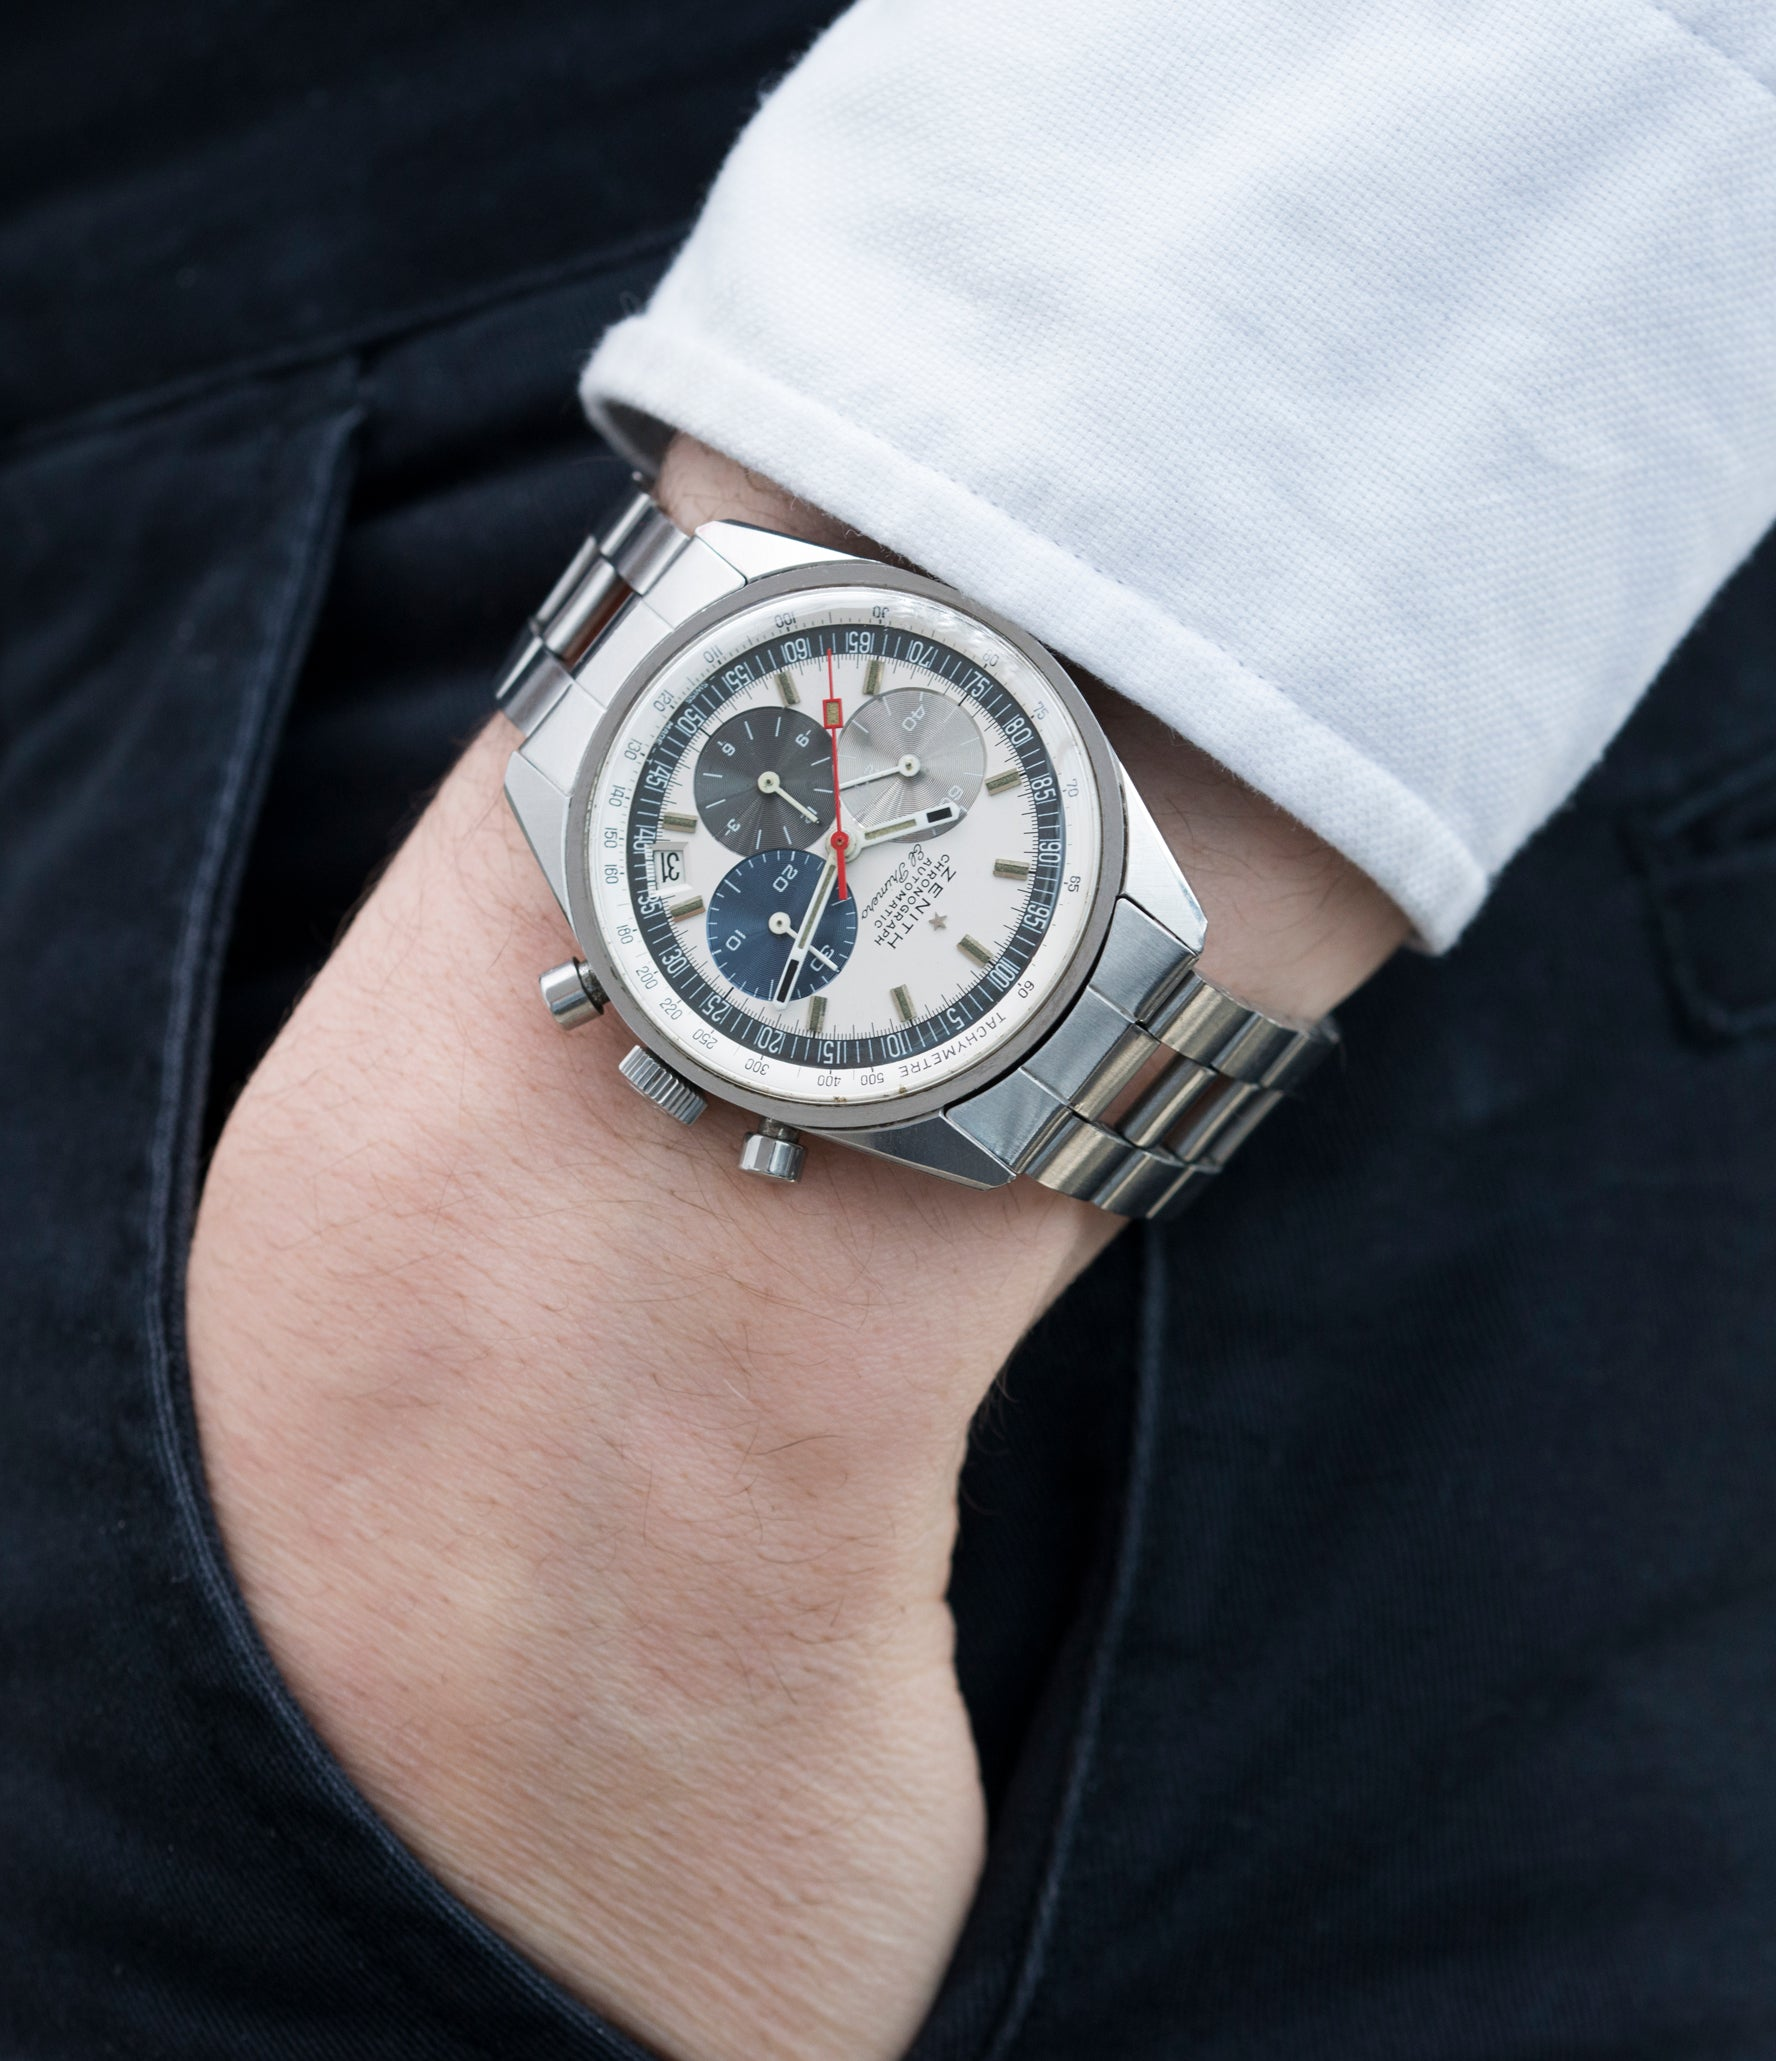 collect rare vintage watches Zenith El Primero A386 one of the first automatic chronographs for sale at A Collected Man London